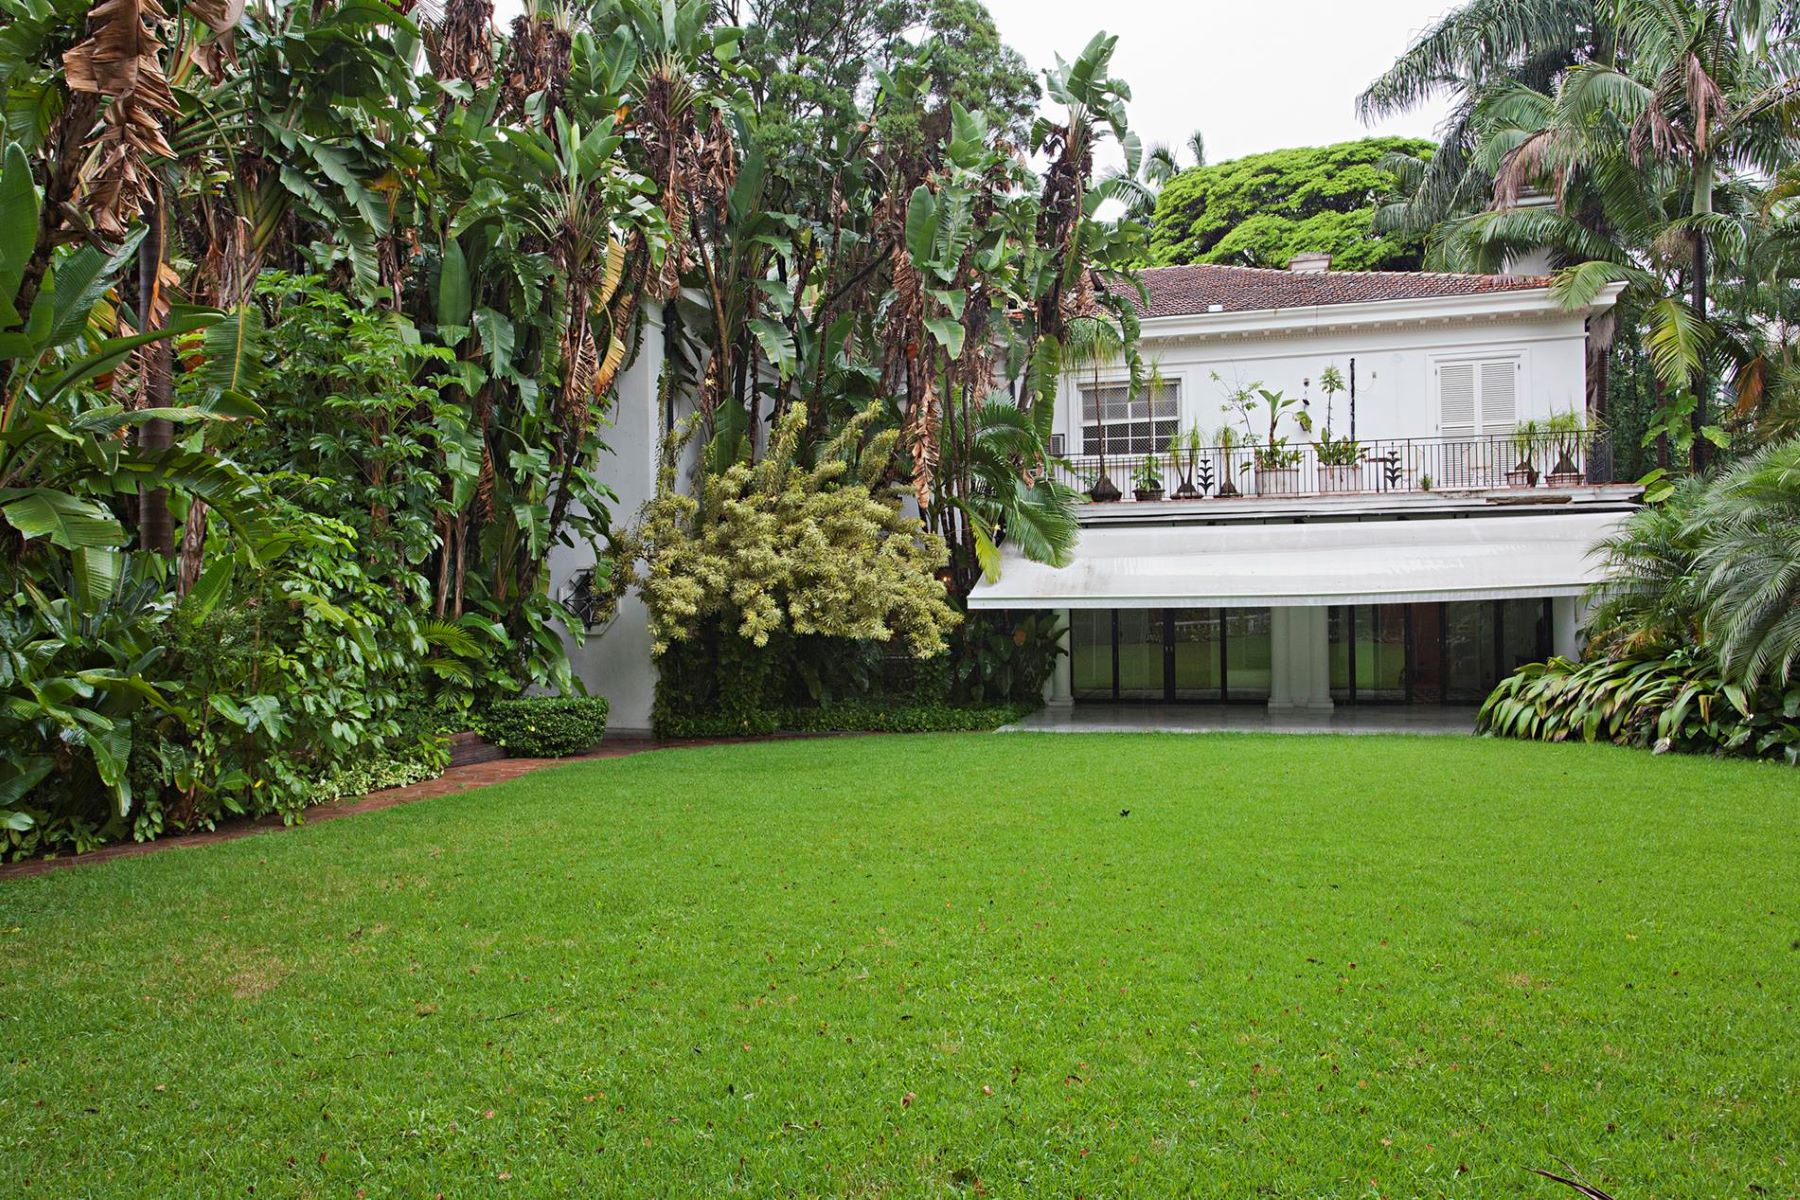 Single Family Home for Sale at Classic mansion Sao Paulo, Sao Paulo 01448-020 Brazil